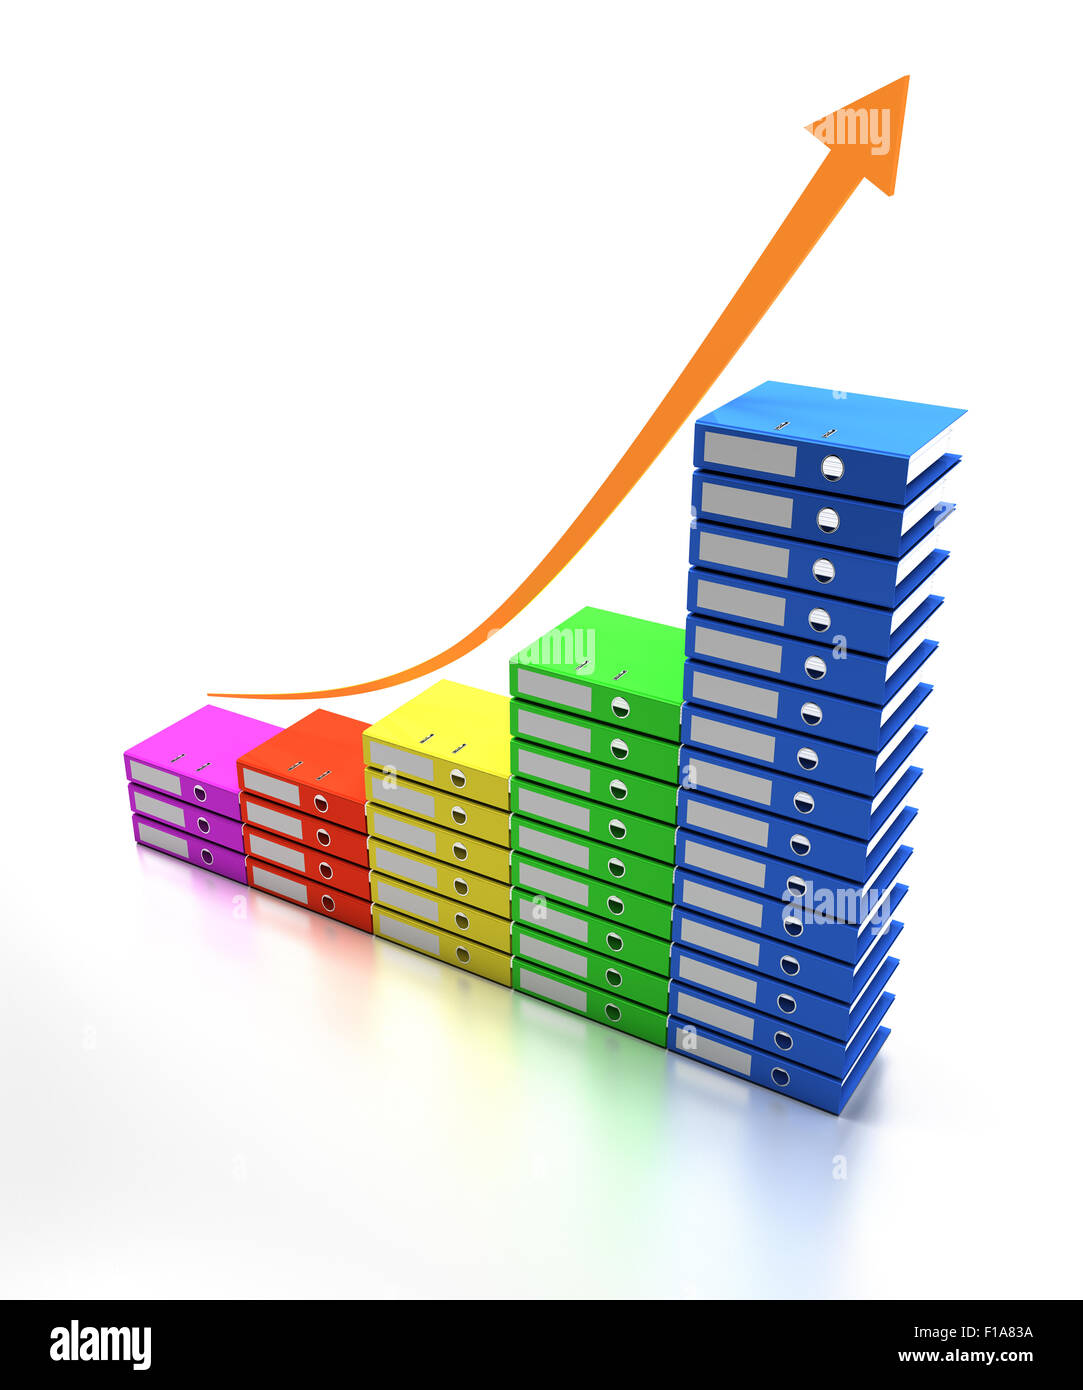 Increasing workload - Stock Image